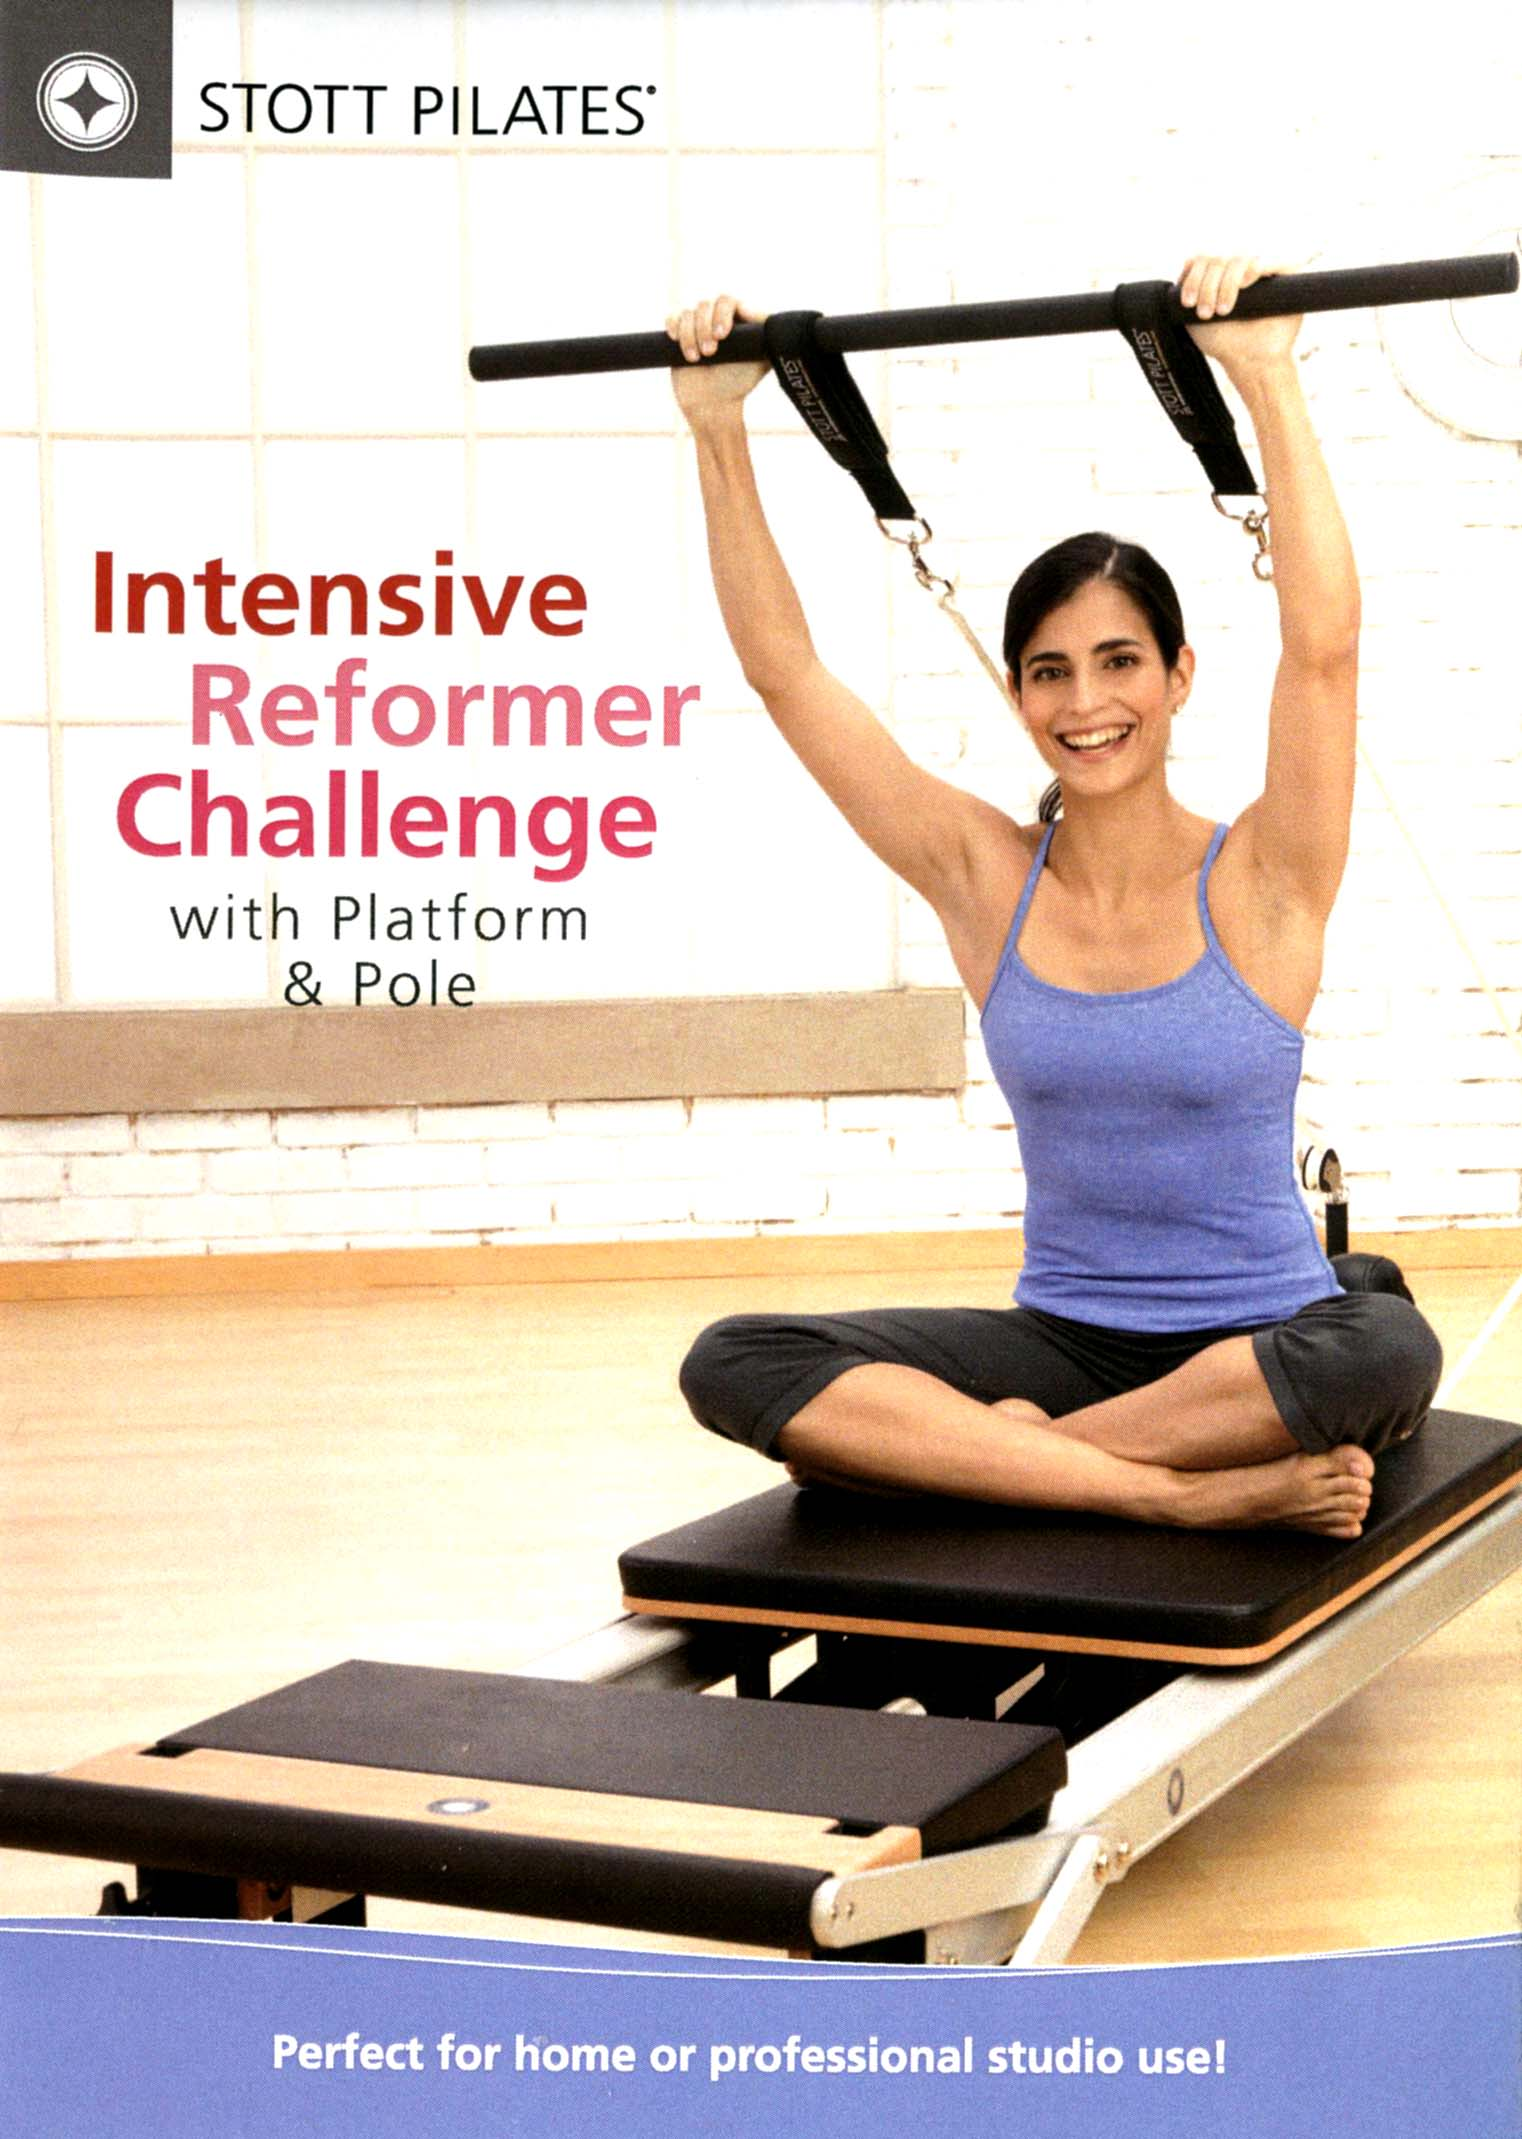 Stott Pilates: Intensive Reformer Challenge with Platform & Pole